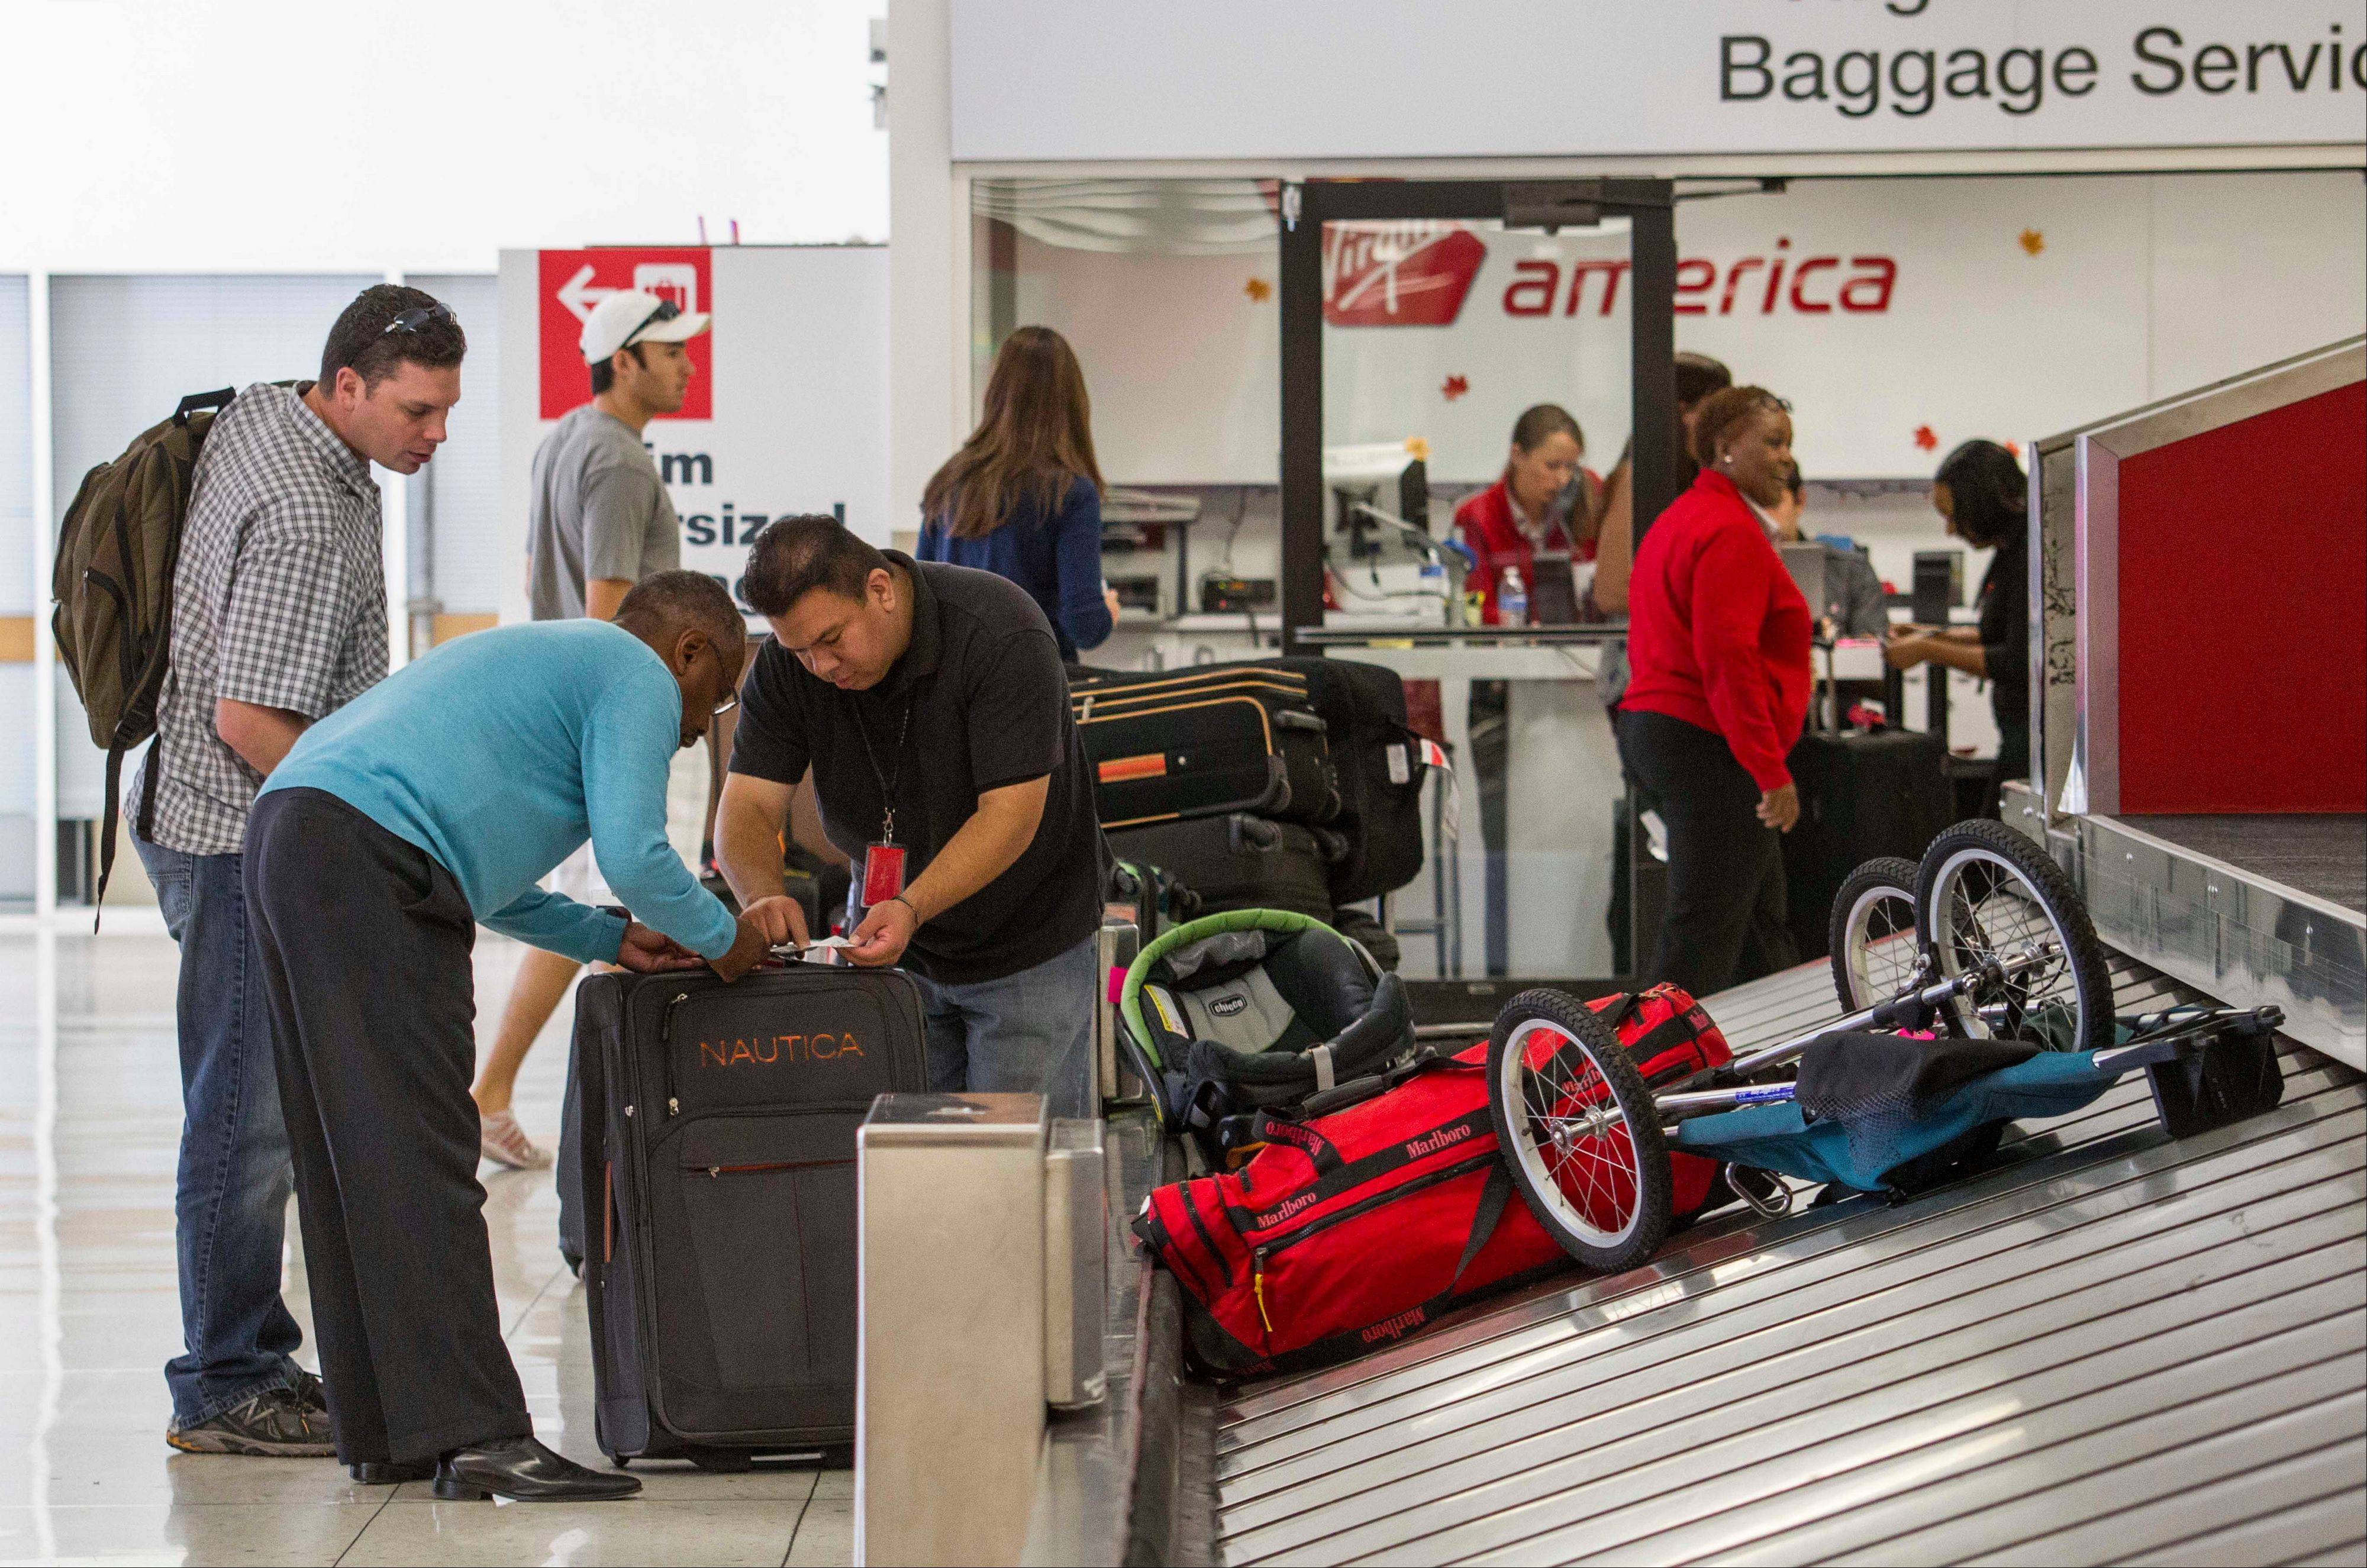 Transportation Security Administration employees help passengers getting back their luggage at Los Angeles International Airport's Terminal 3 on Saturday.